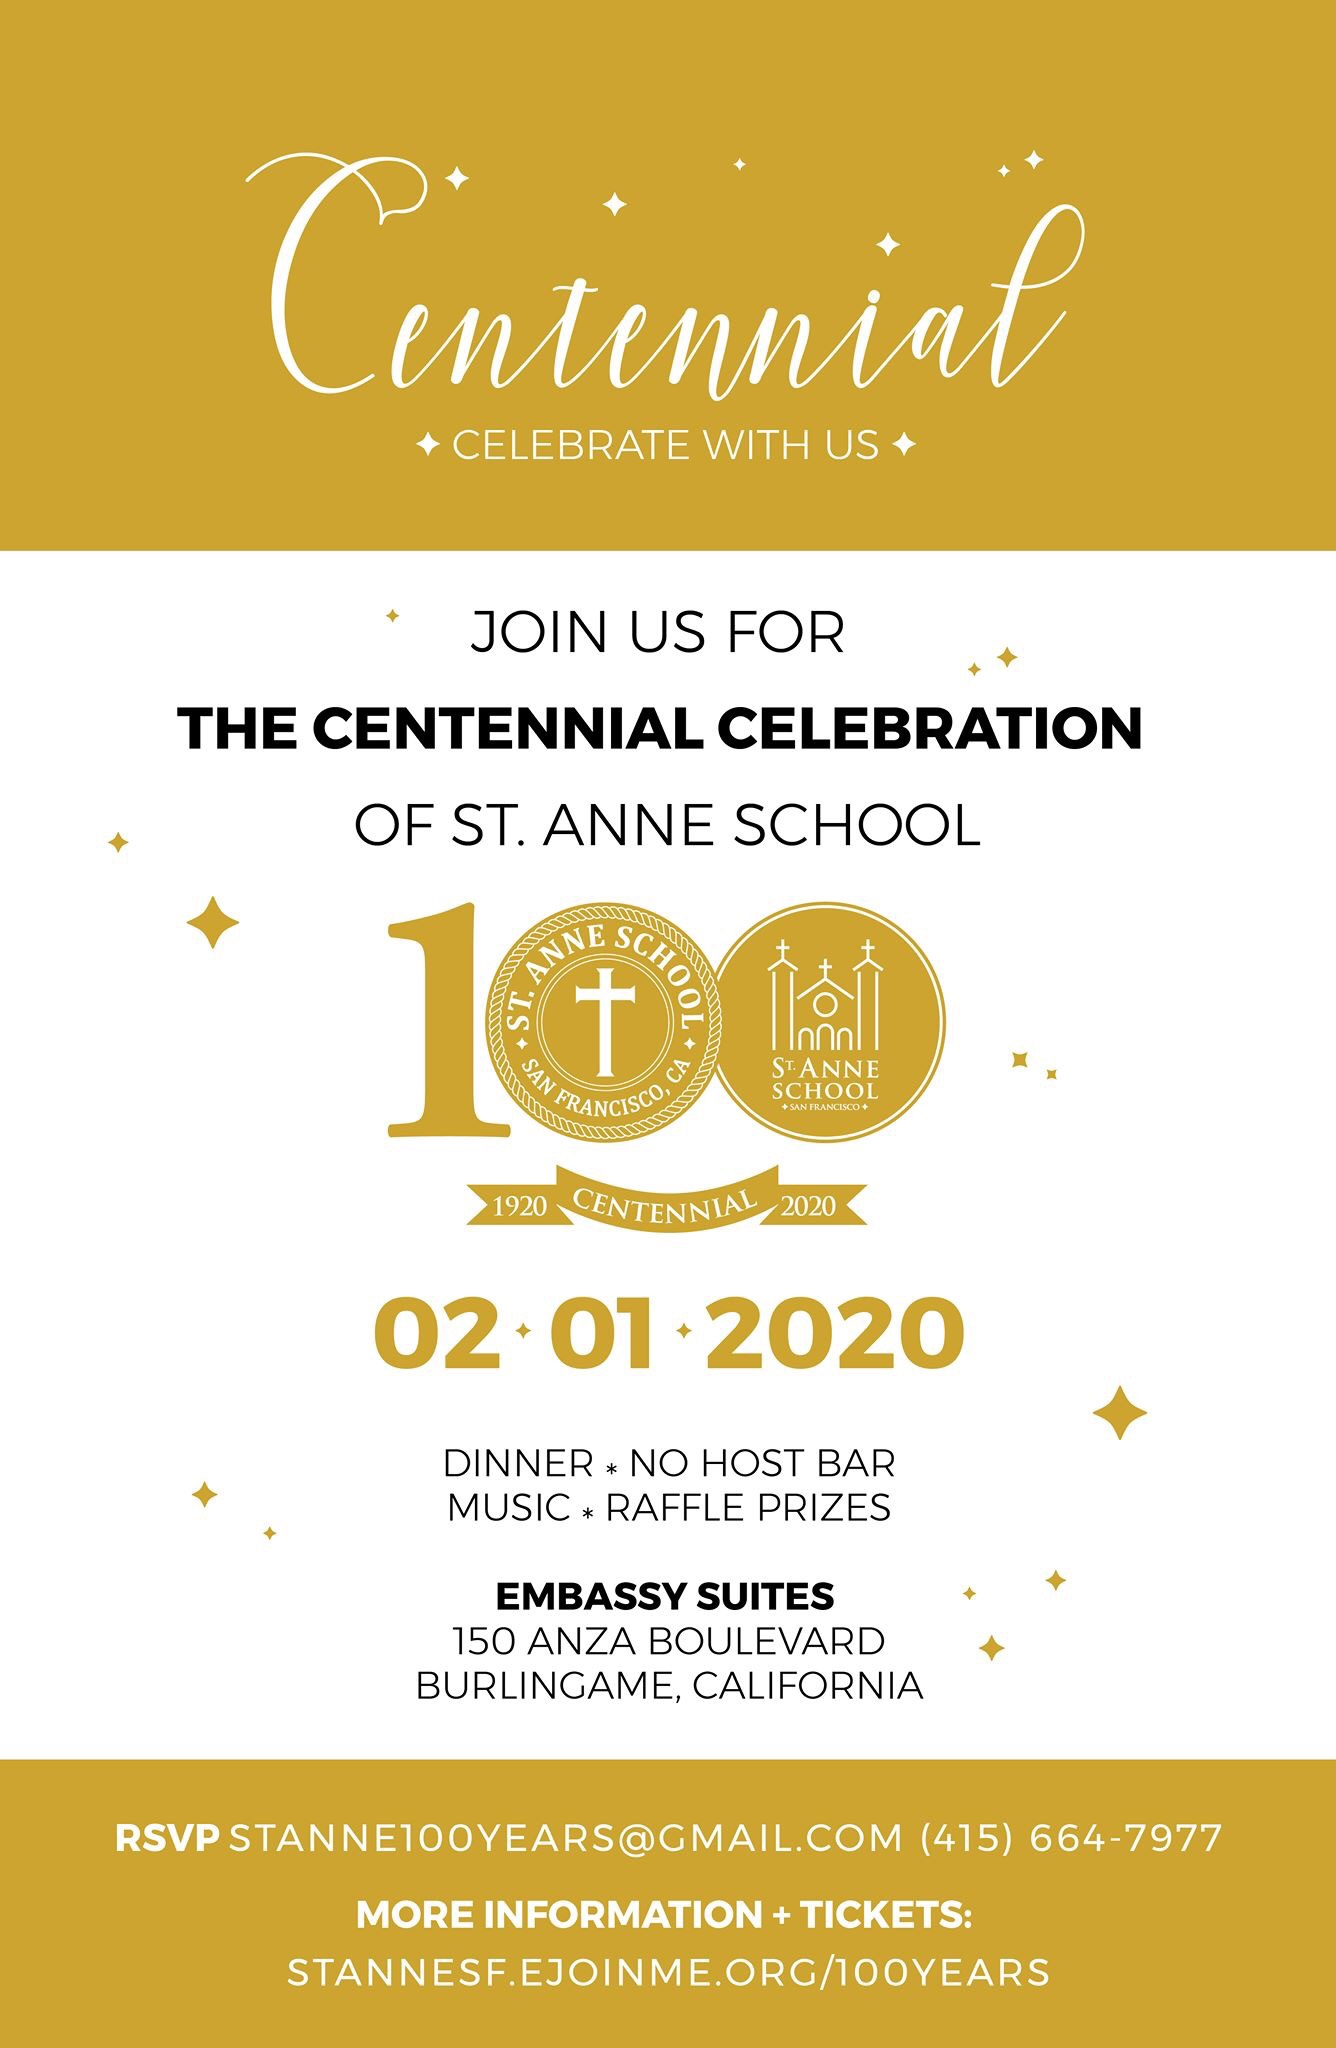 St. Anne School Centennial Gala: Buy Tickets Now